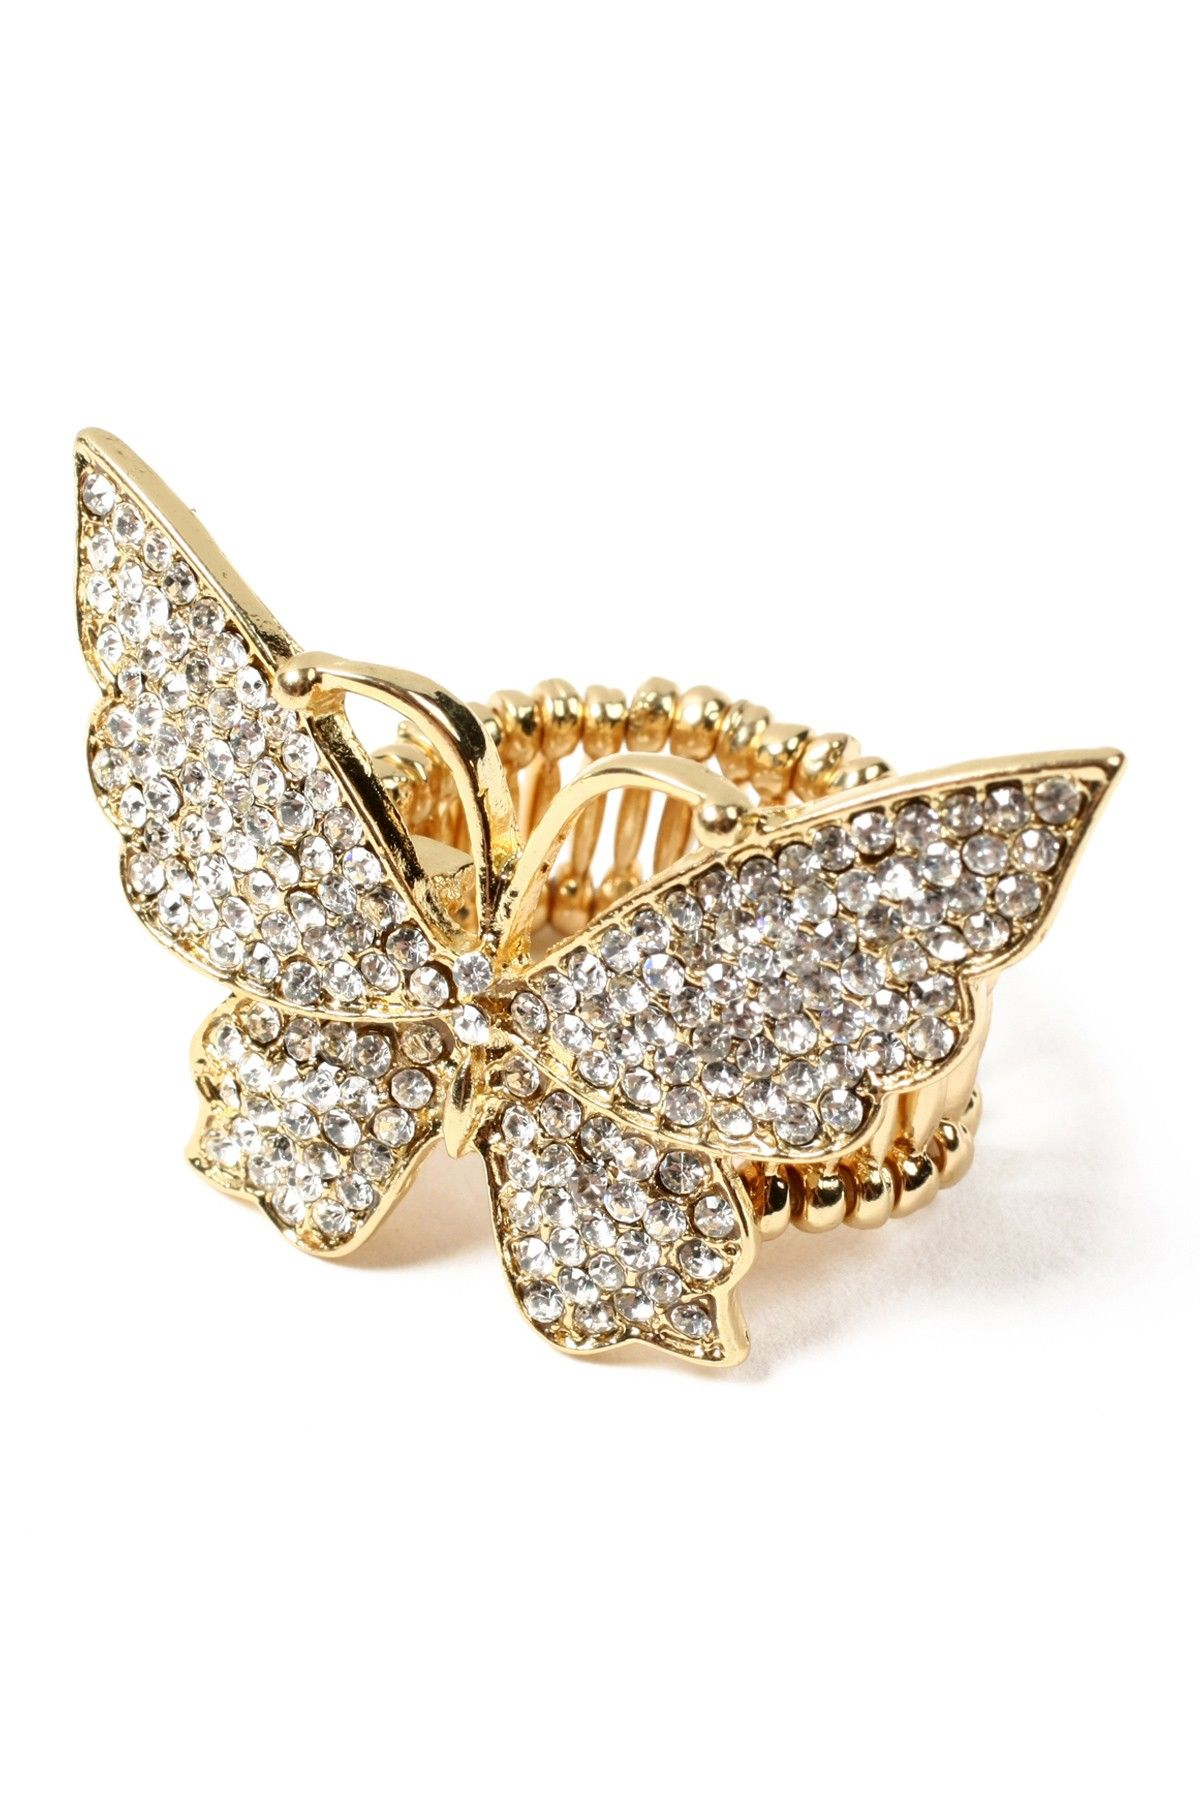 Crystal Butterfly Ring....I Love Butterflies and the new